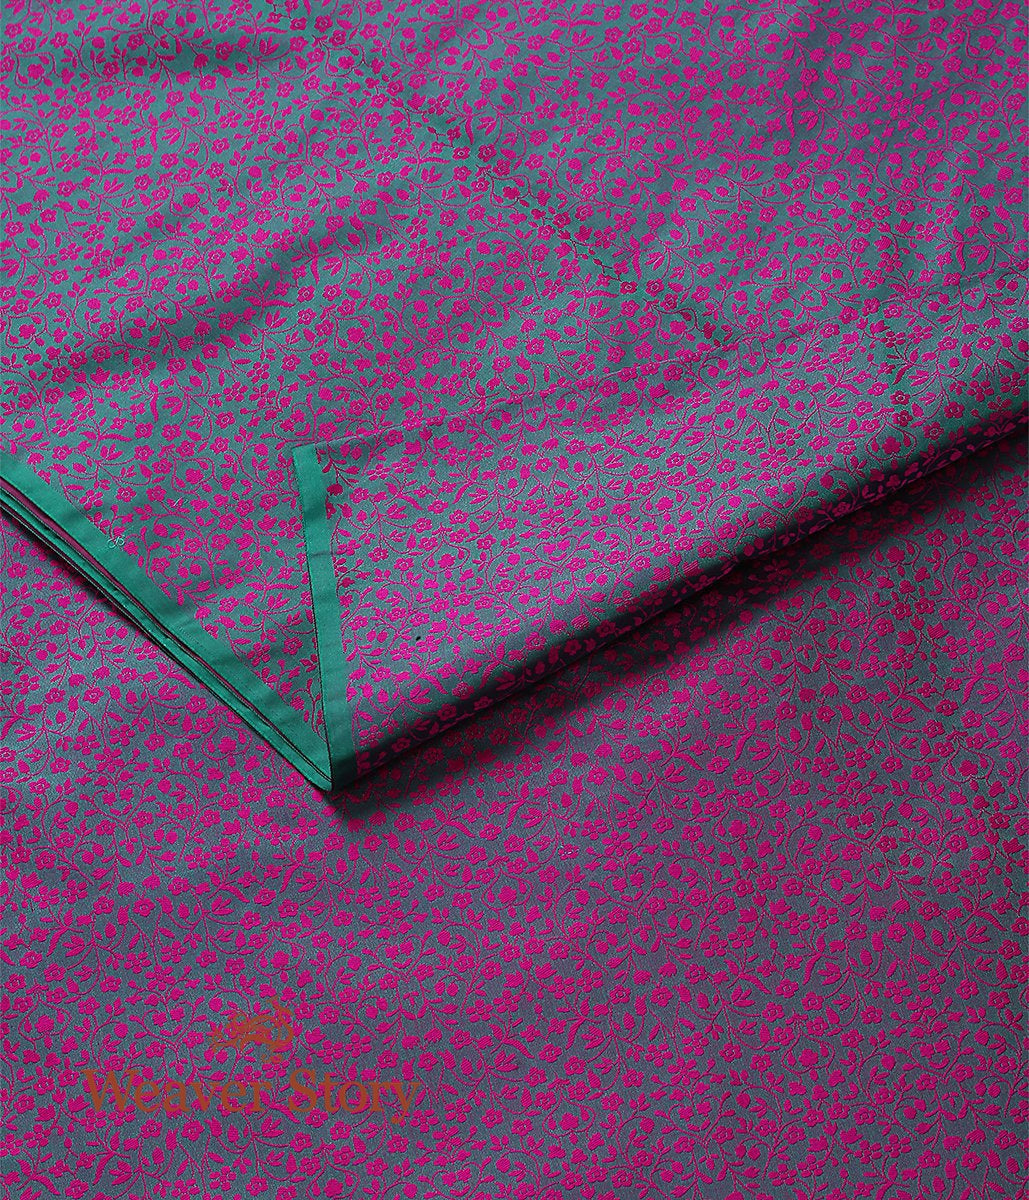 Handwoven Green and Pink Self Tanchoi Fabric